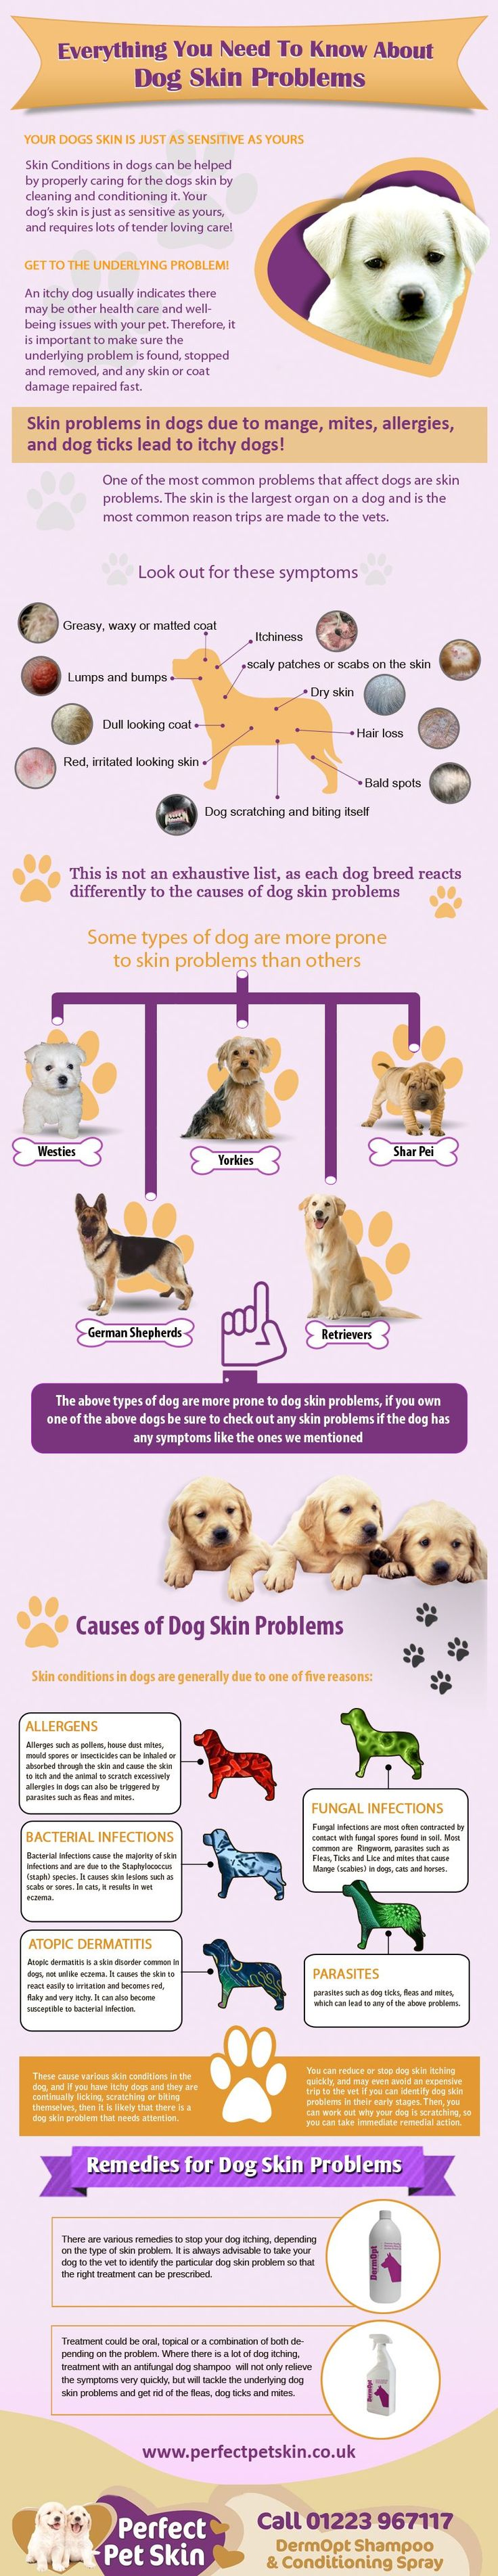 Dog skin problems are very common. This infographic will help you understand what might be the problem with you dog, and more specifically what the pr